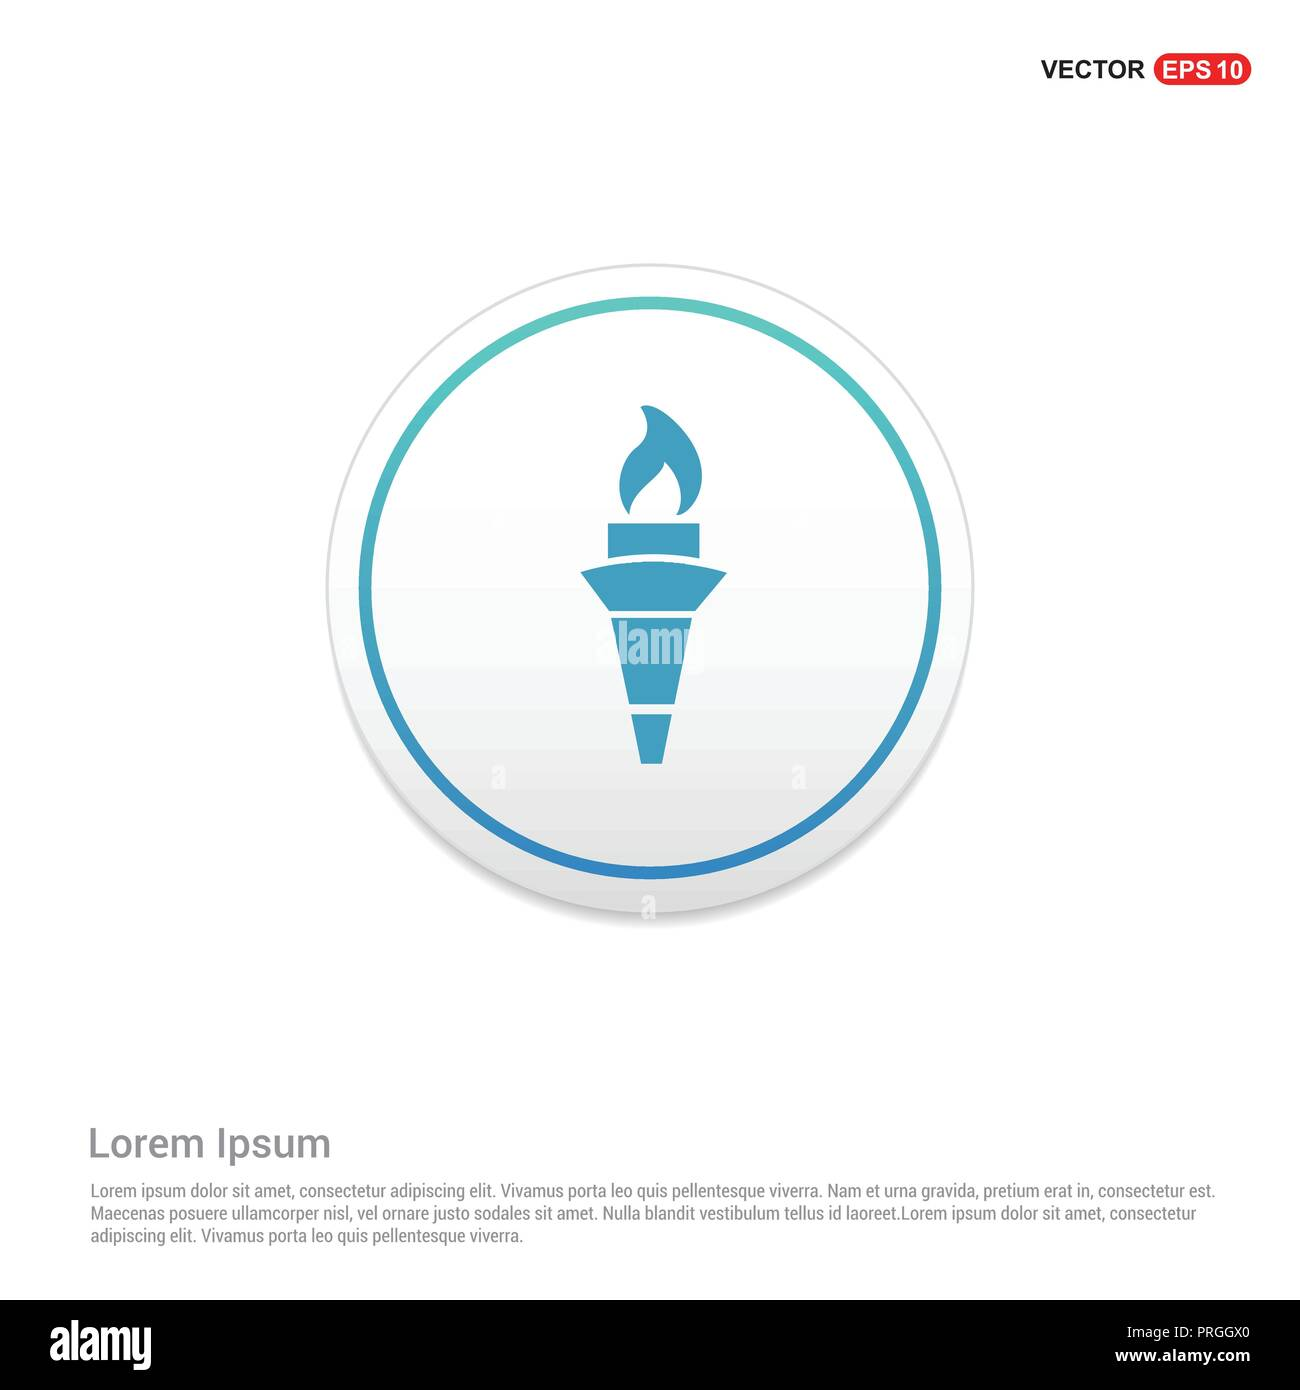 Olympic Torch Icon Hexa White Background icon template - Free vector icon - Stock Vector